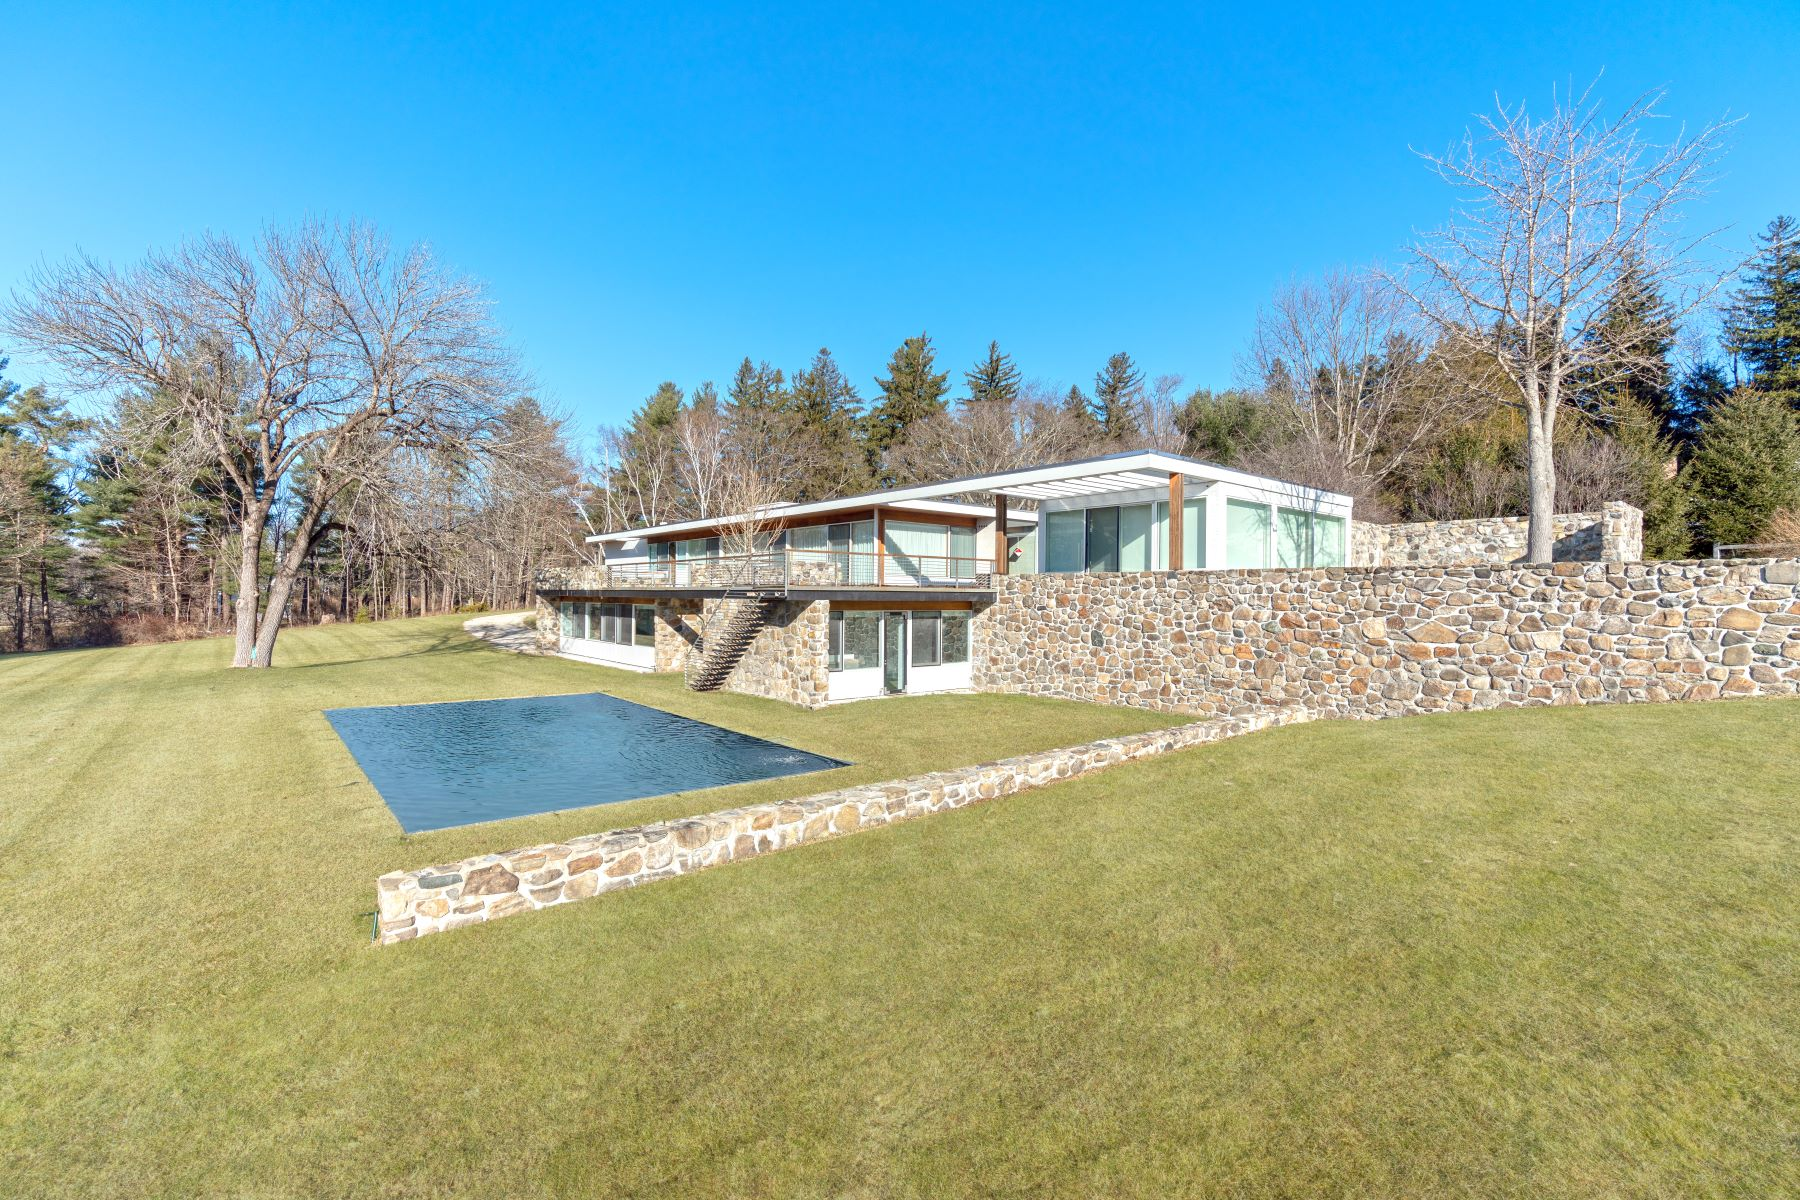 Casa Unifamiliar por un Venta en Marcel Breuer's Gagarin House I A Mid-Century Masterpiece 144 Gallows Lane Litchfield, Connecticut 06759 Estados Unidos